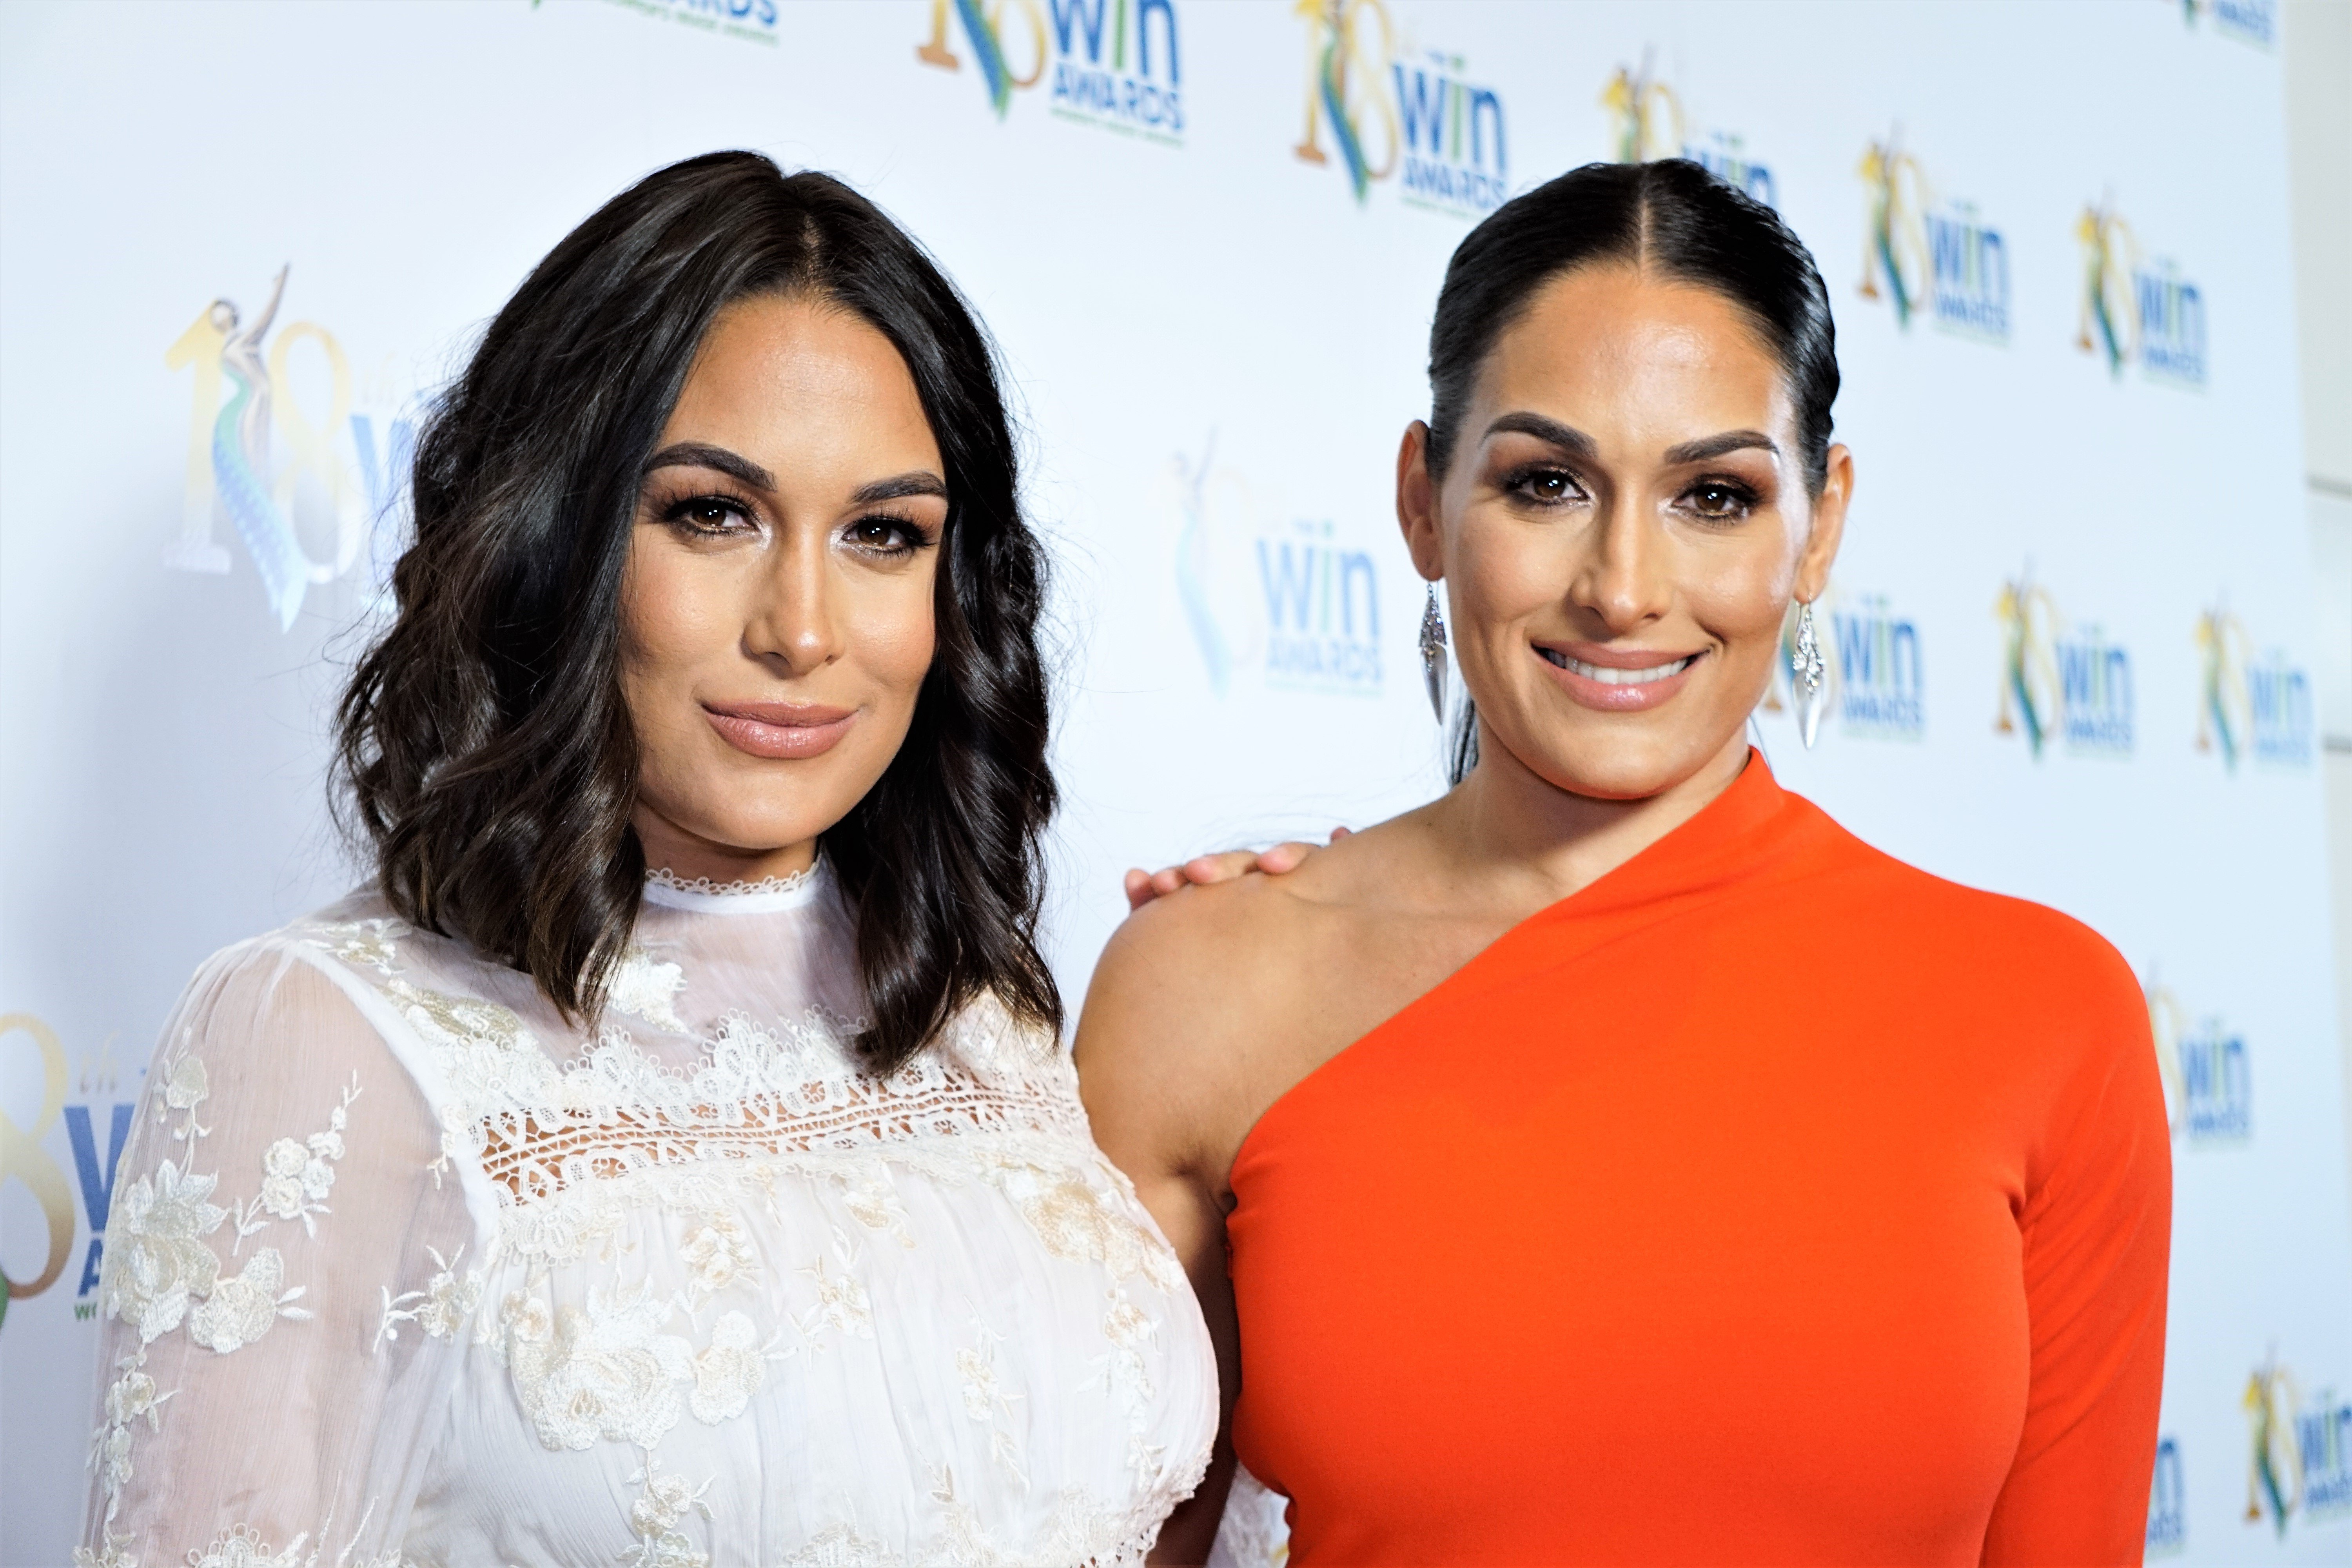 nikki bella brie bella the bella twins